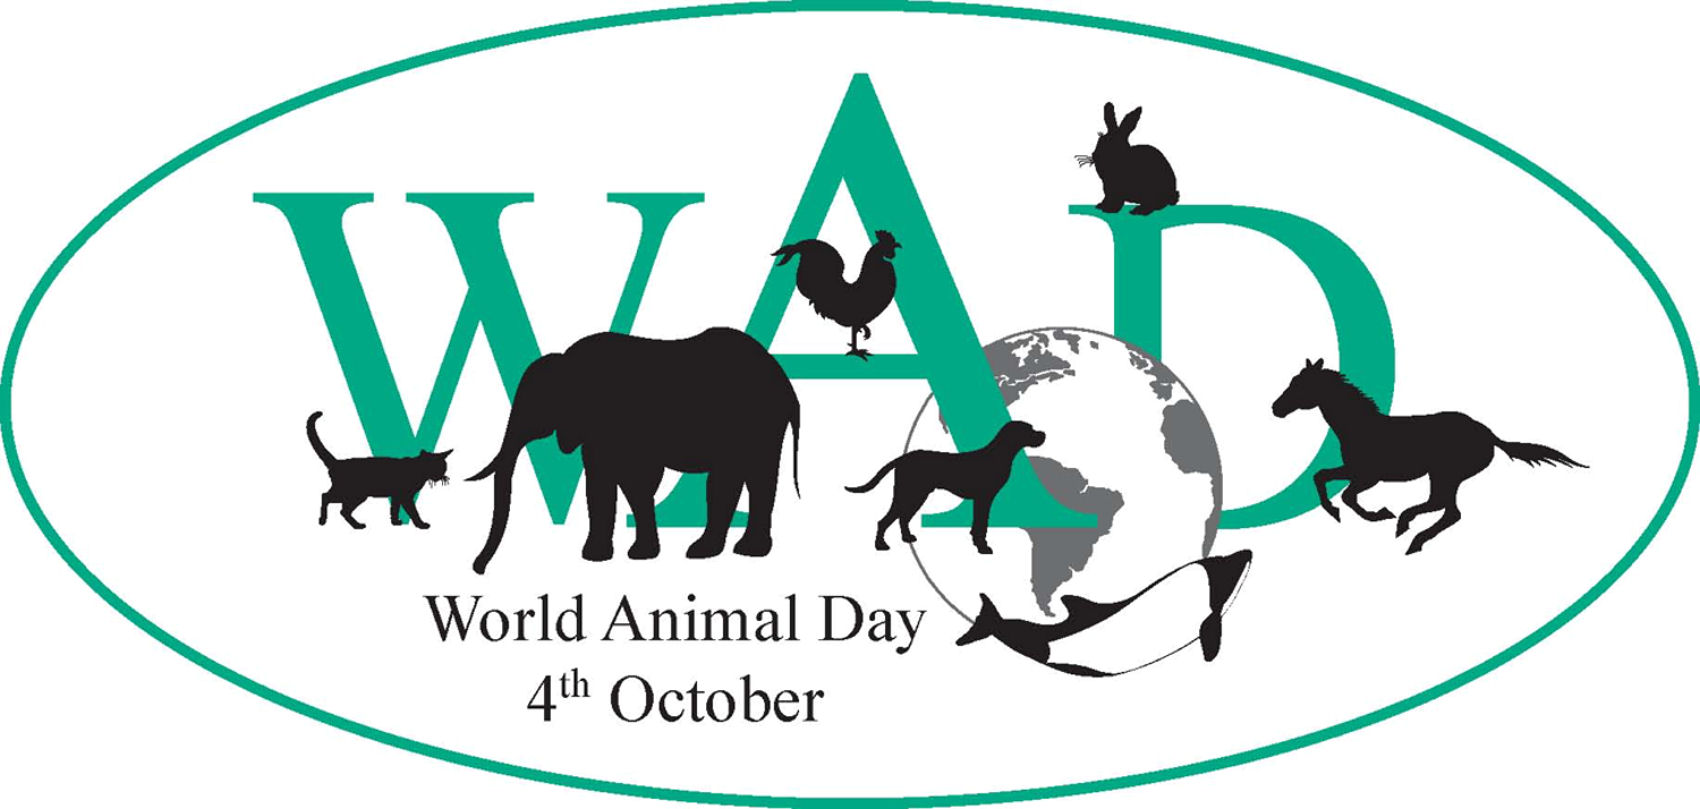 World Wildlife Day Png - World Animal Day Logo Final 1700 Pixels Wide, Transparent background PNG HD thumbnail